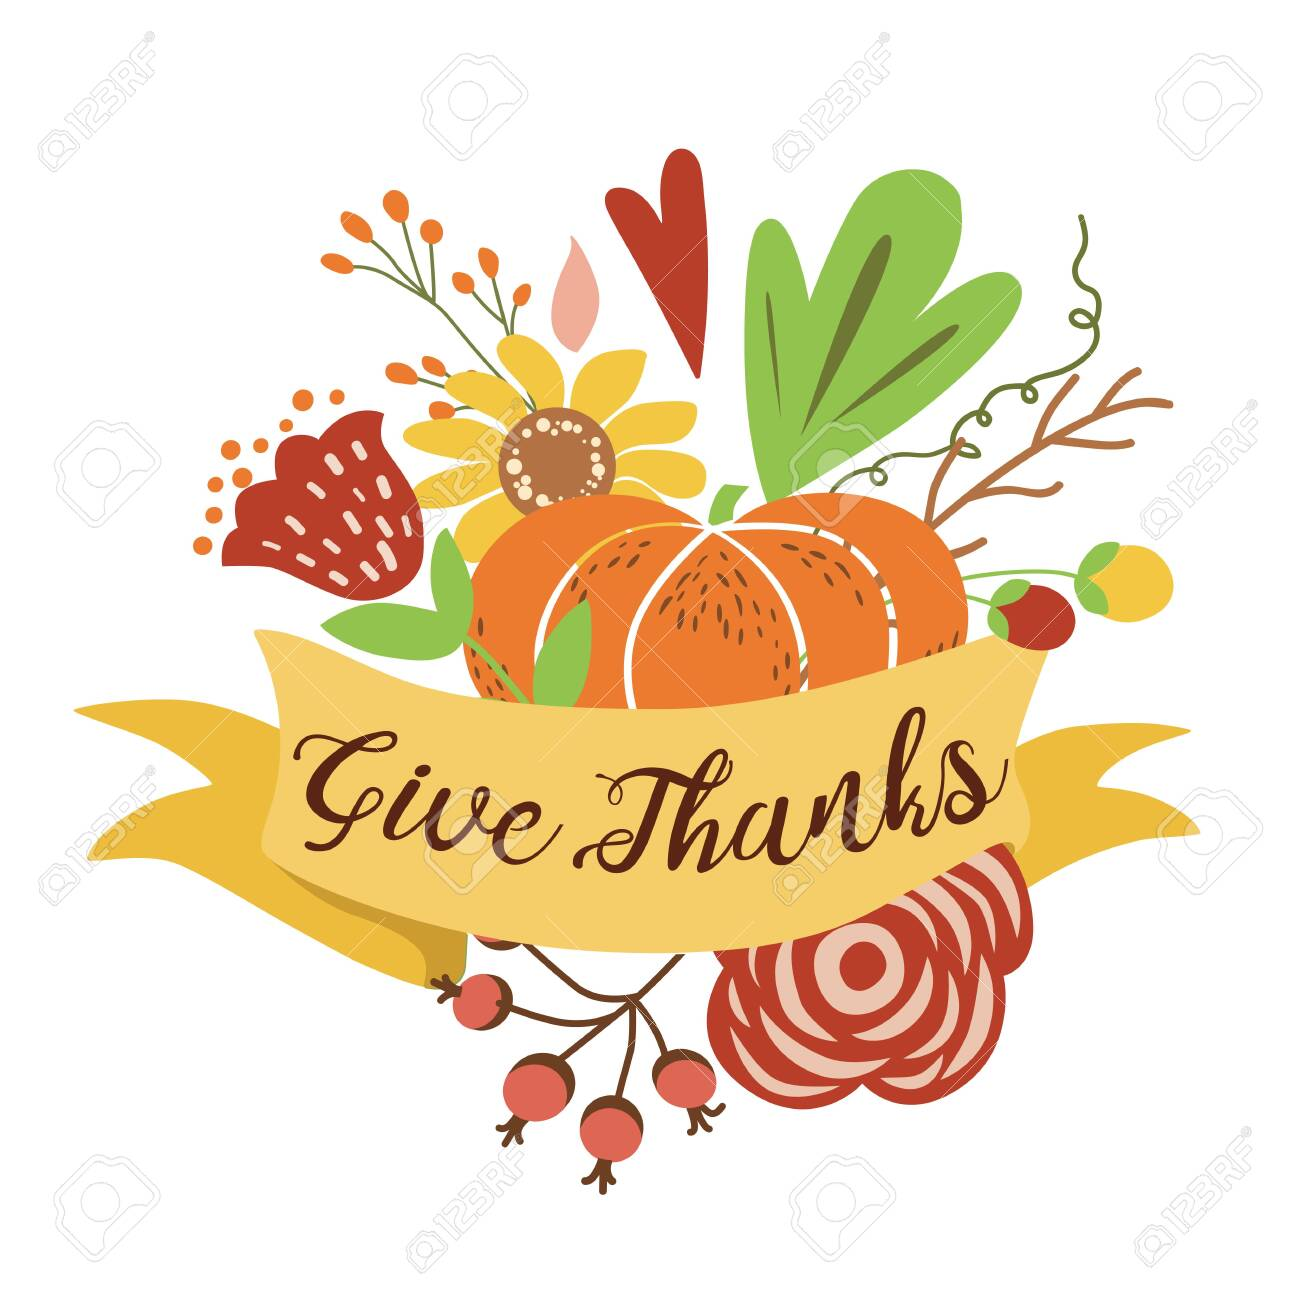 Give Thanks Autumn Bouquet Composition Hand Drawn Happy Thanksgiving Royalty Free Cliparts Vectors And Stock Illustration Image 127499005